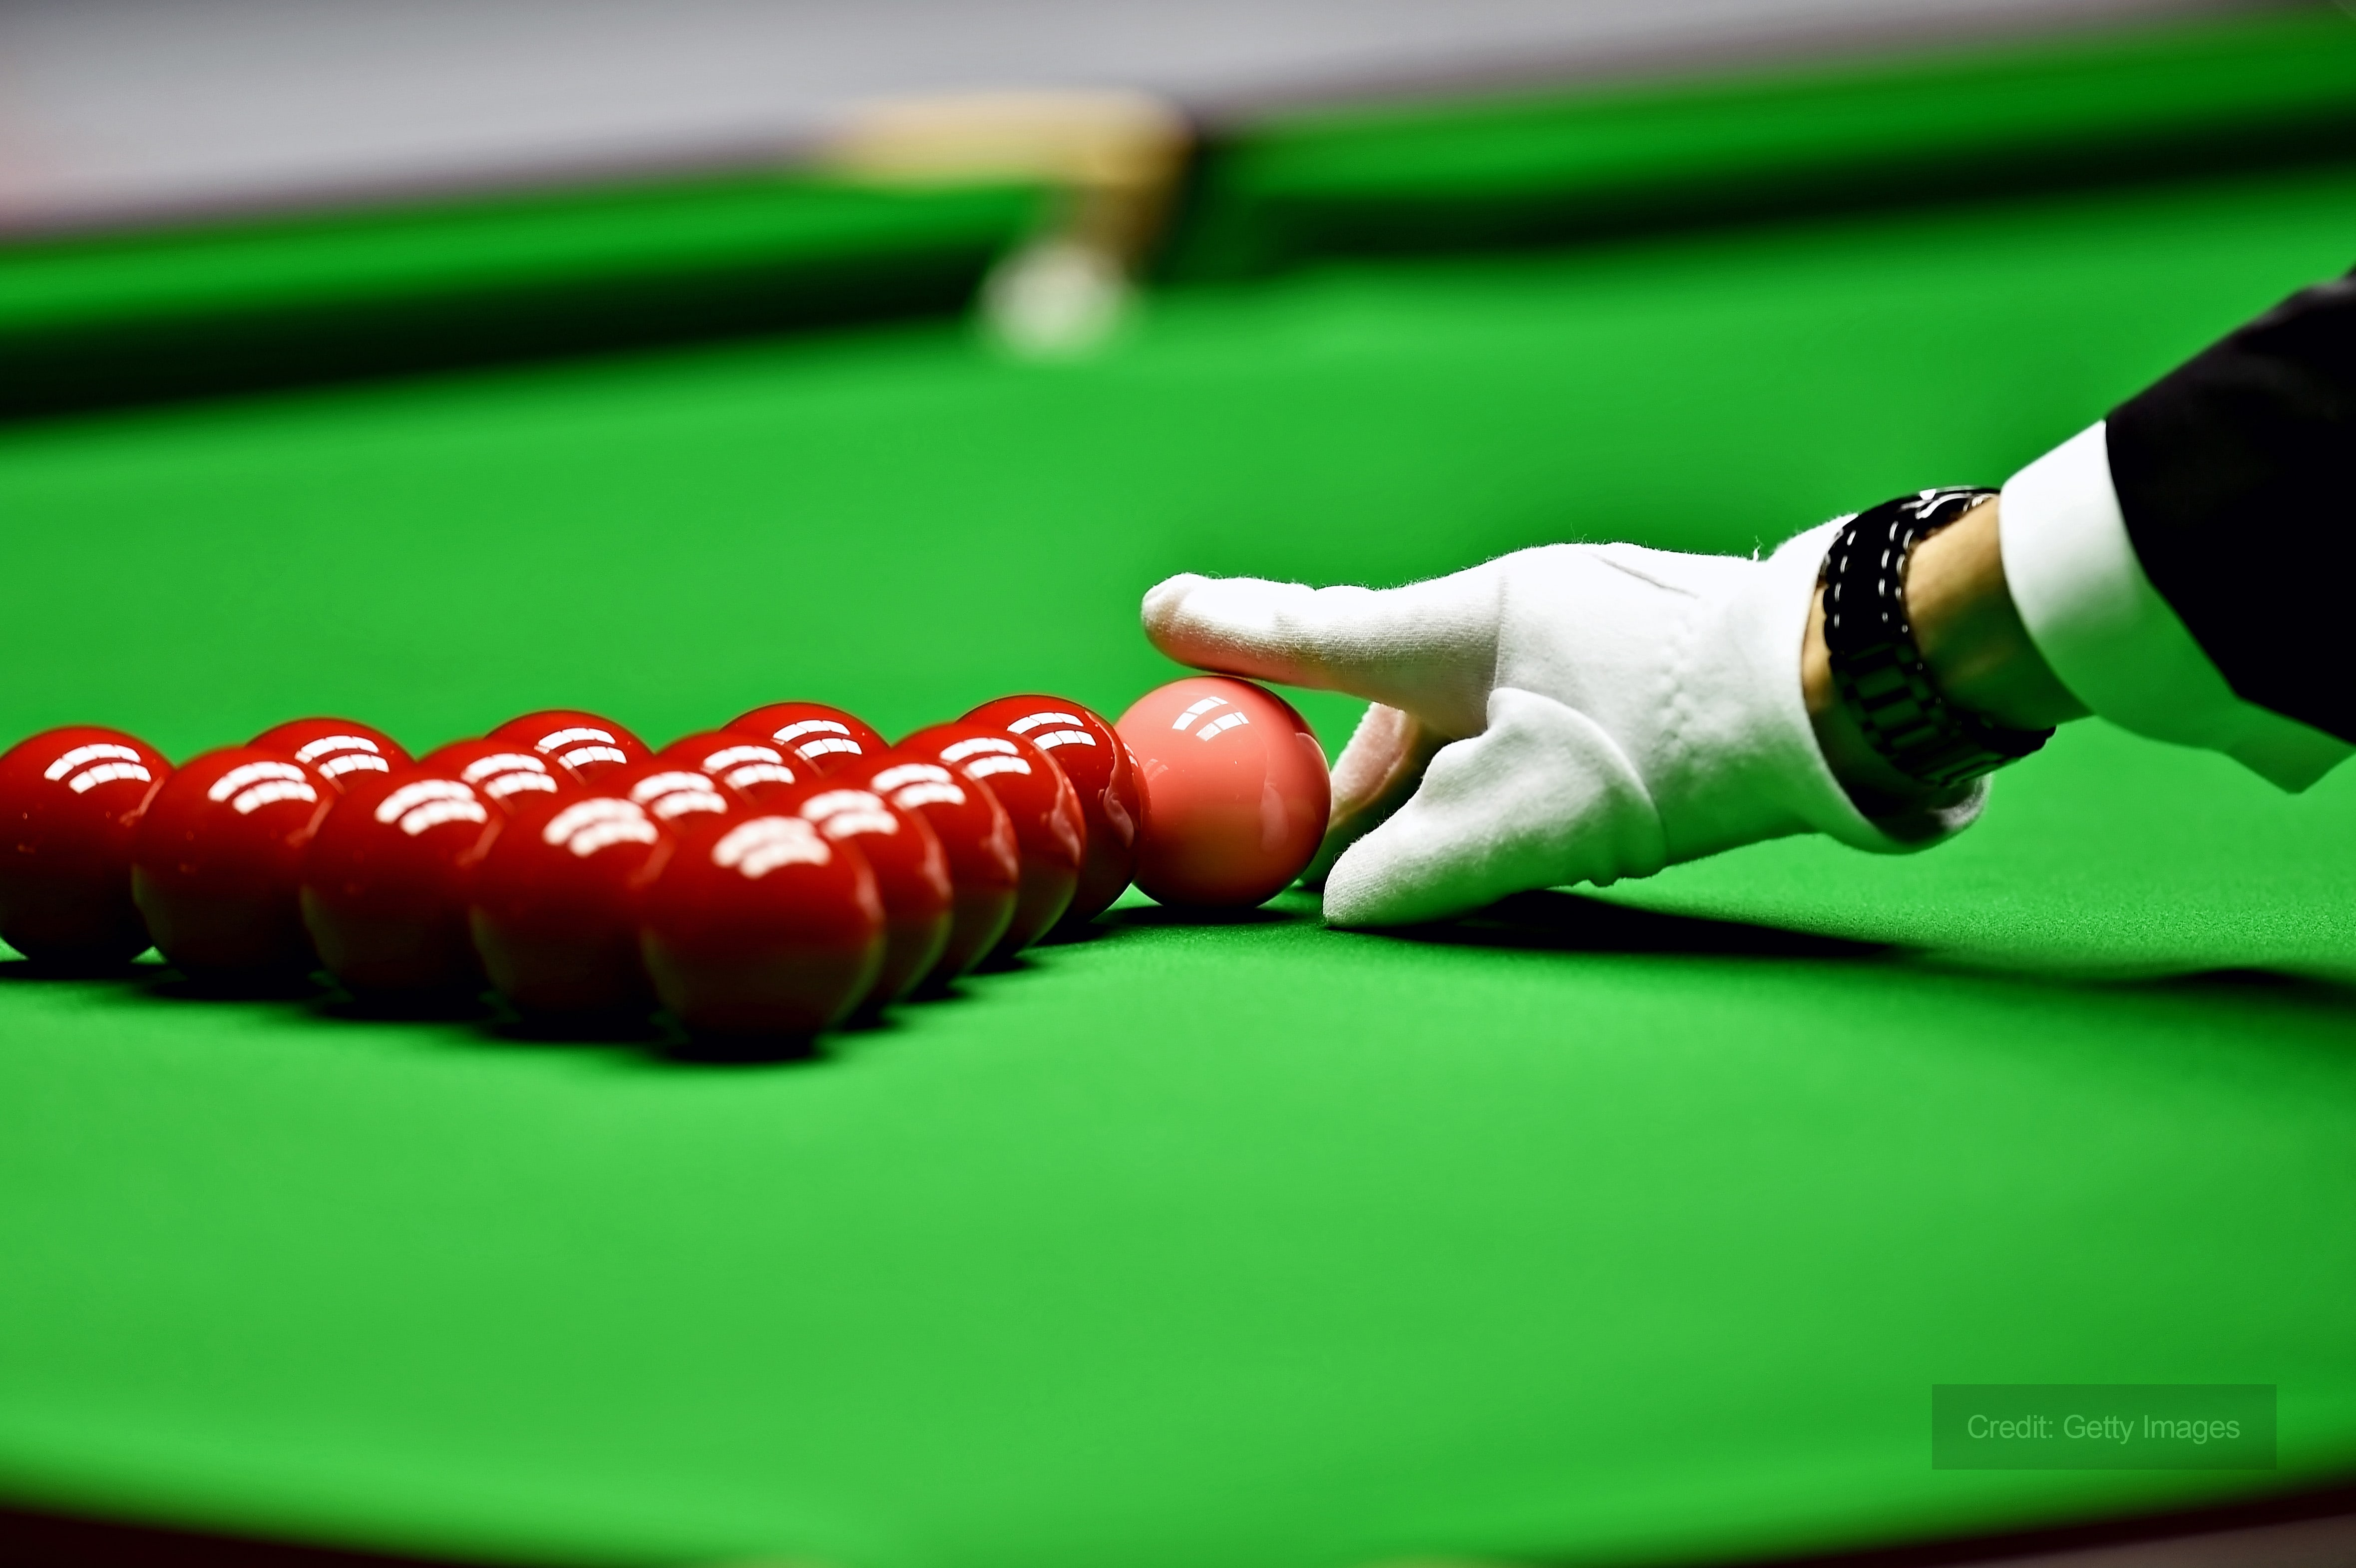 Major snooker competition seeks temporary climate control